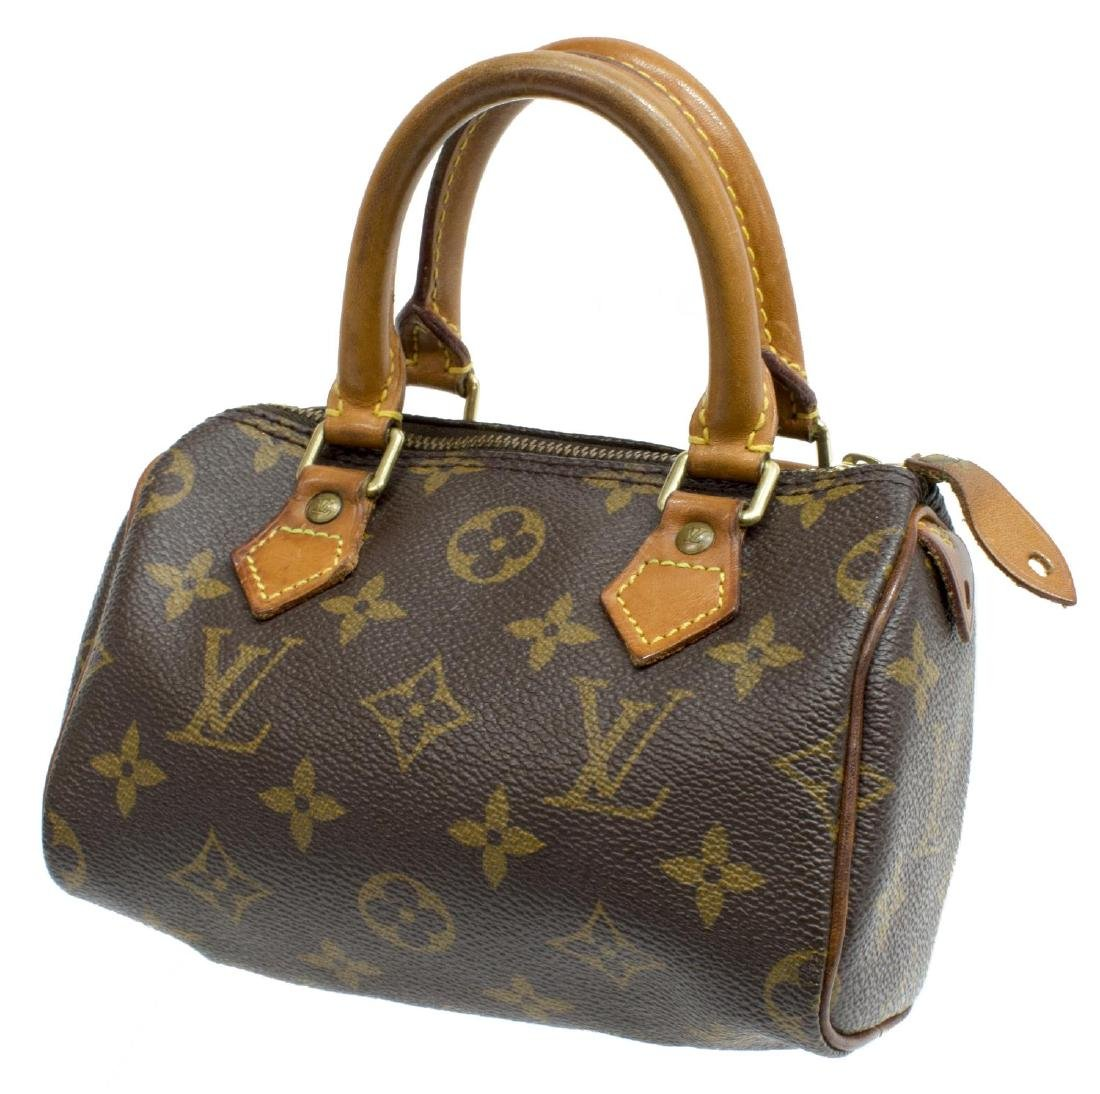 LOUIS VUITTON 'MINI SPEEDY' MONOGRAM CANVAS BAG